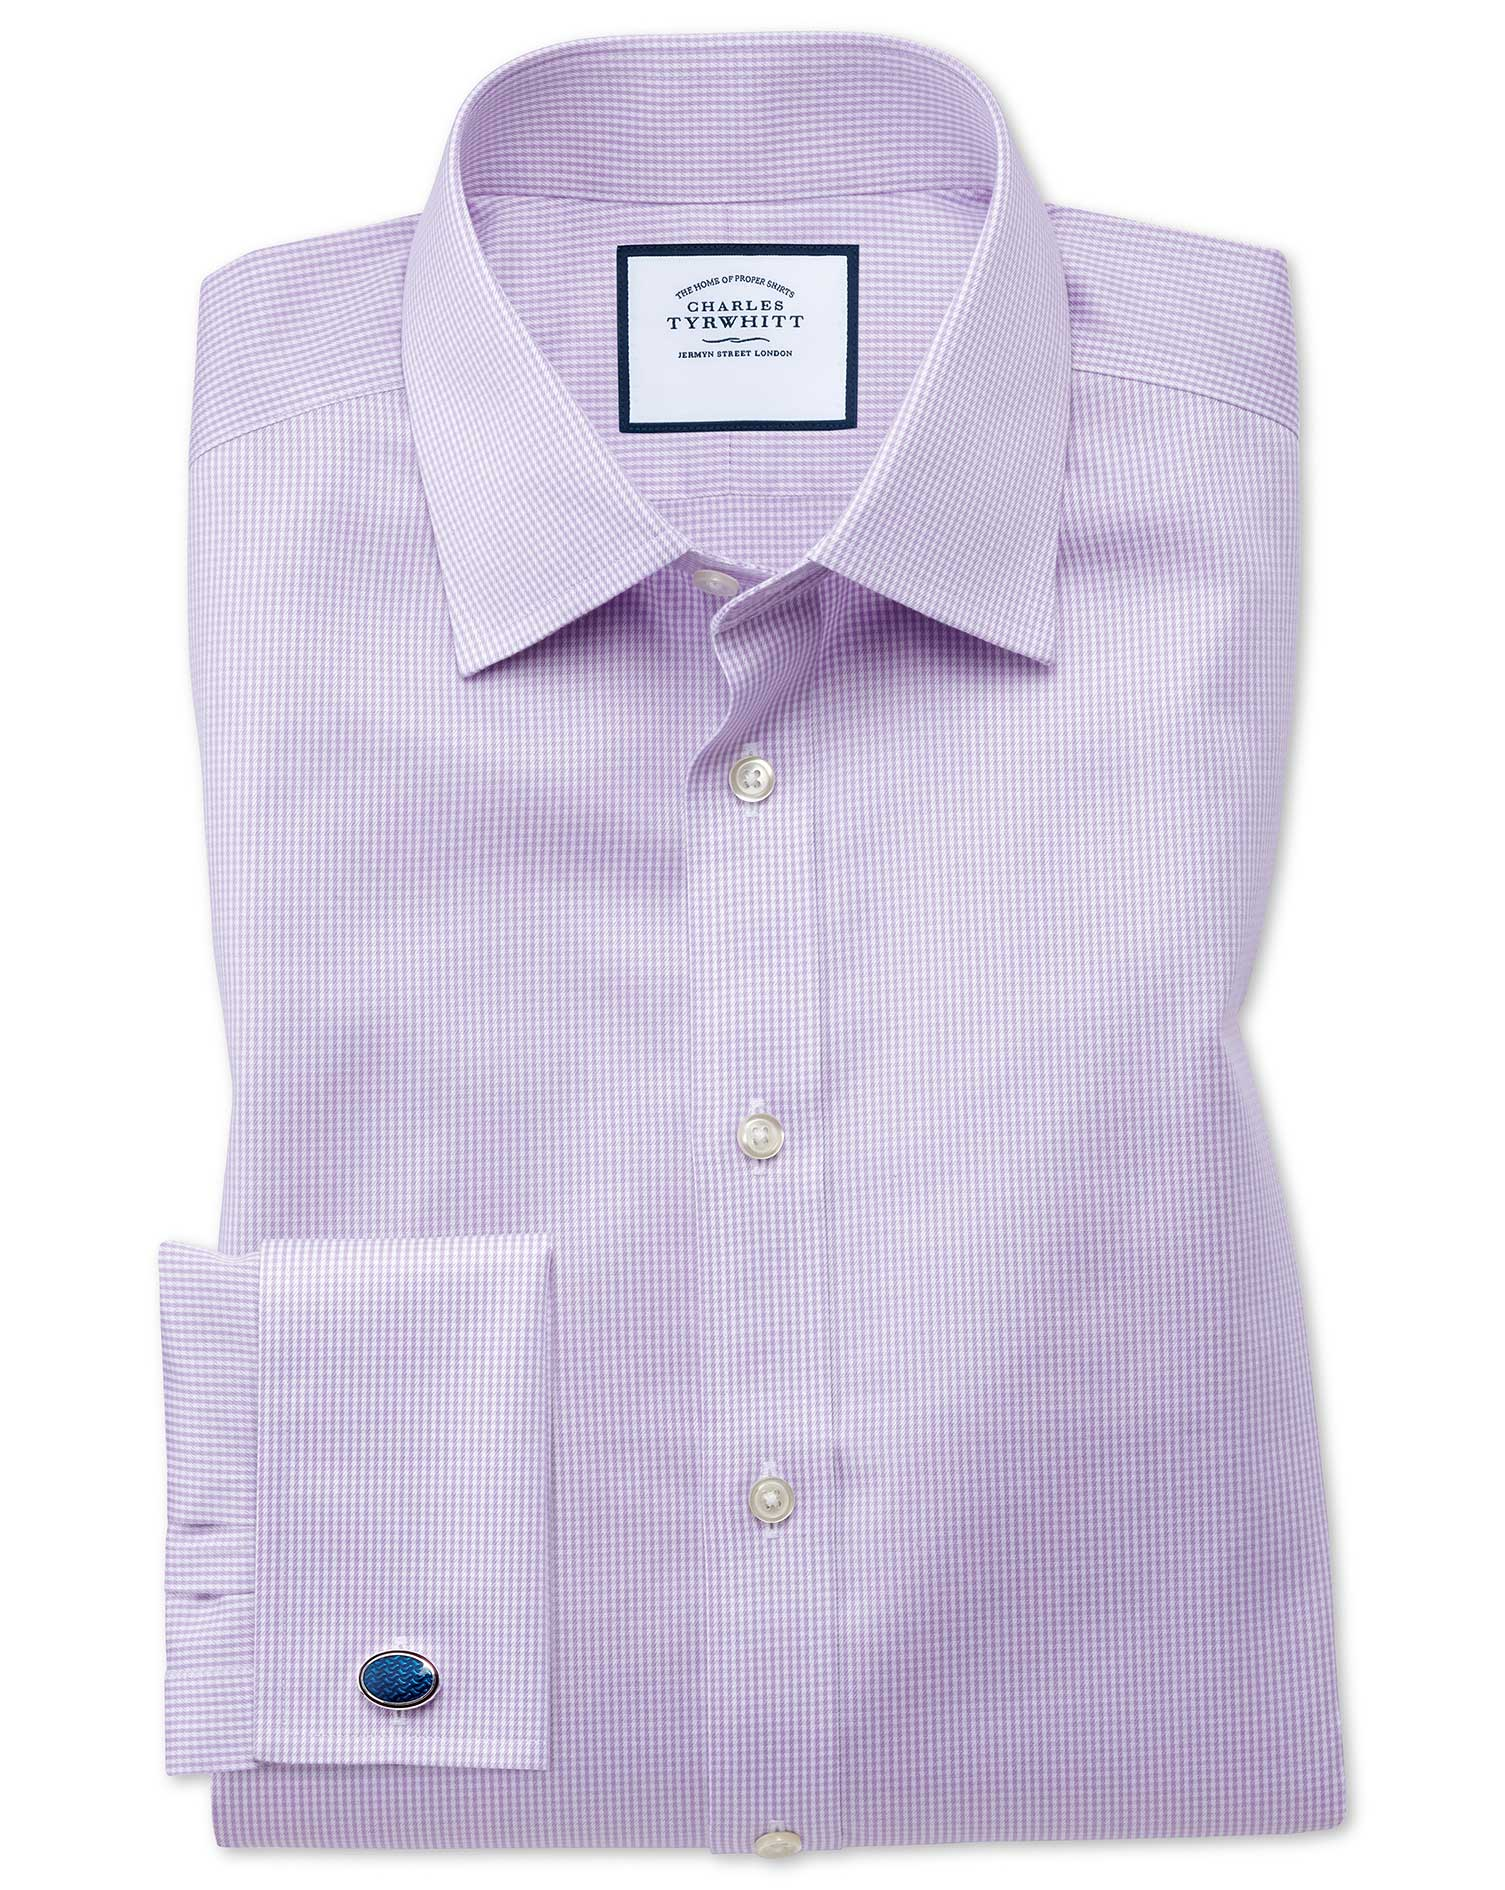 Classic Fit Non-Iron Puppytooth Lilac Cotton Formal Shirt Single Cuff Size 16.5/35 by Charles Tyrwhi